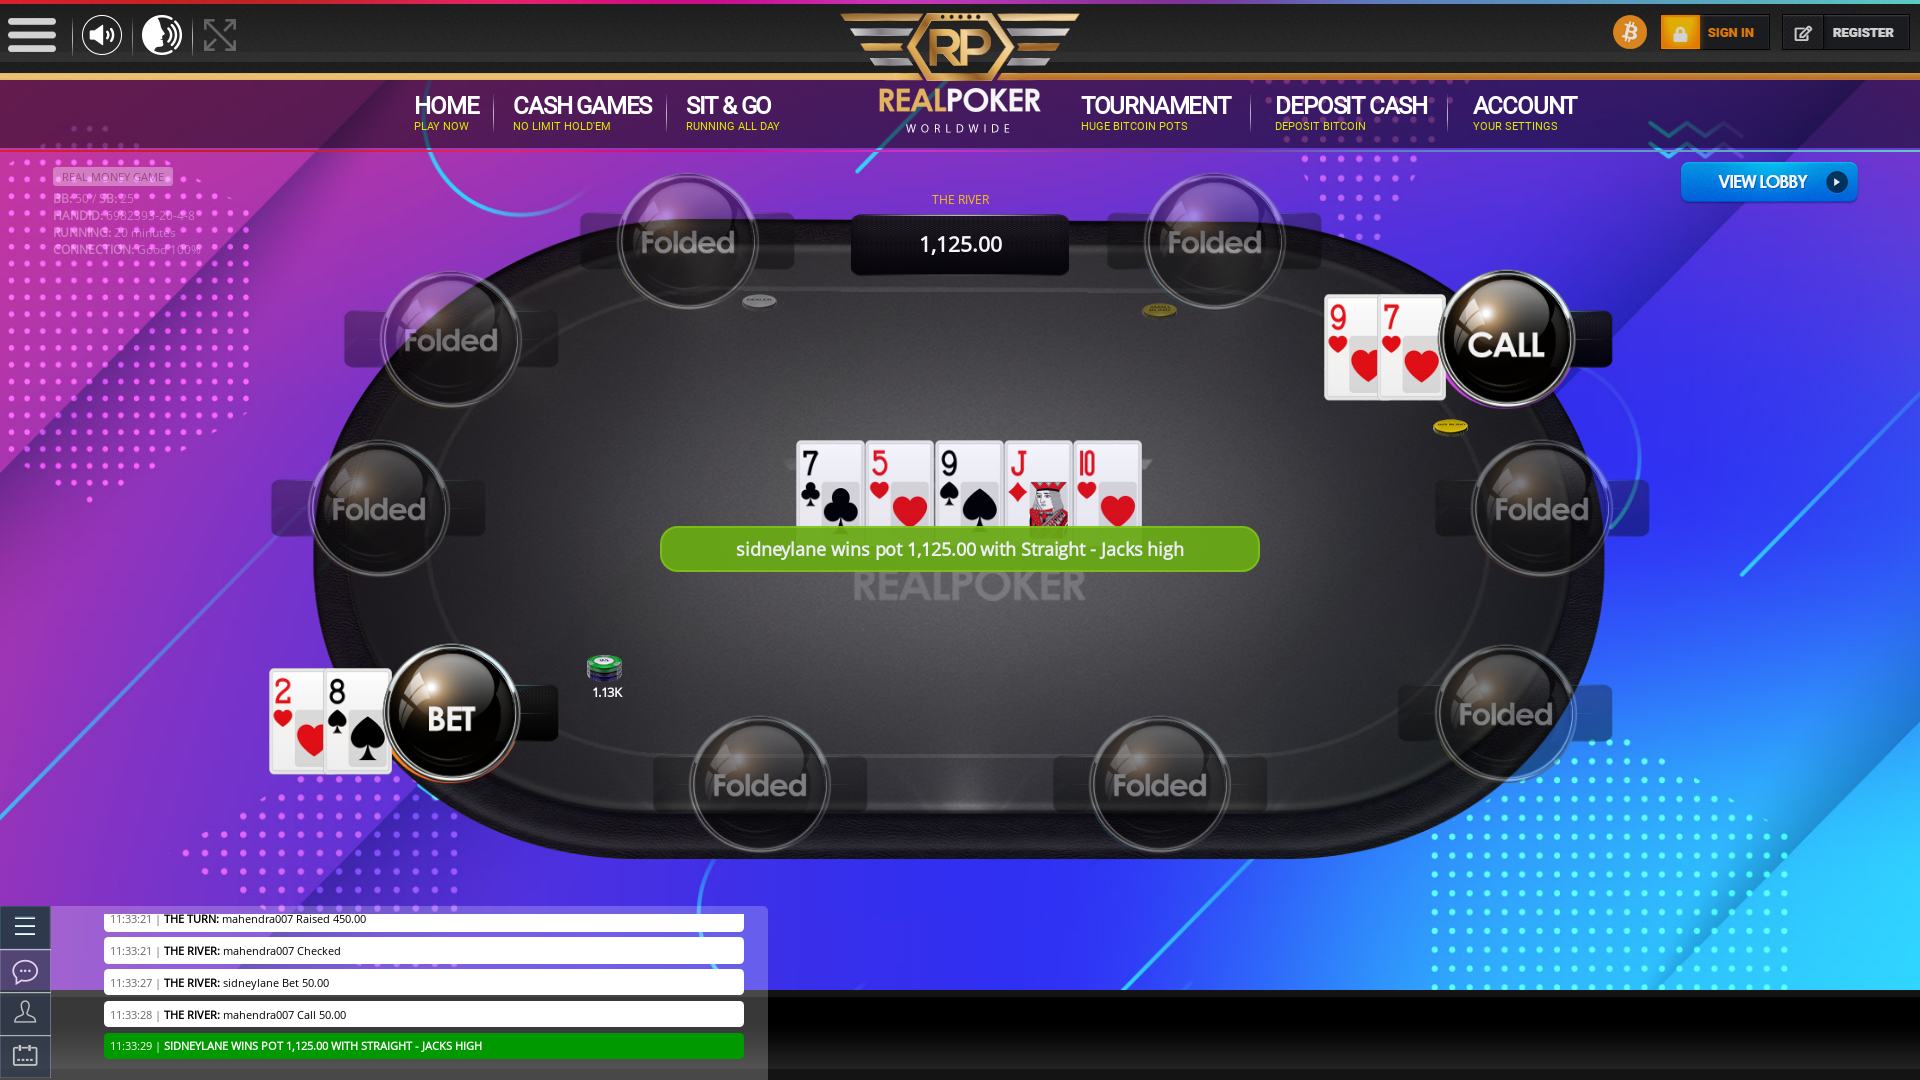 online poker on a 10 player table in the 19th minute match up